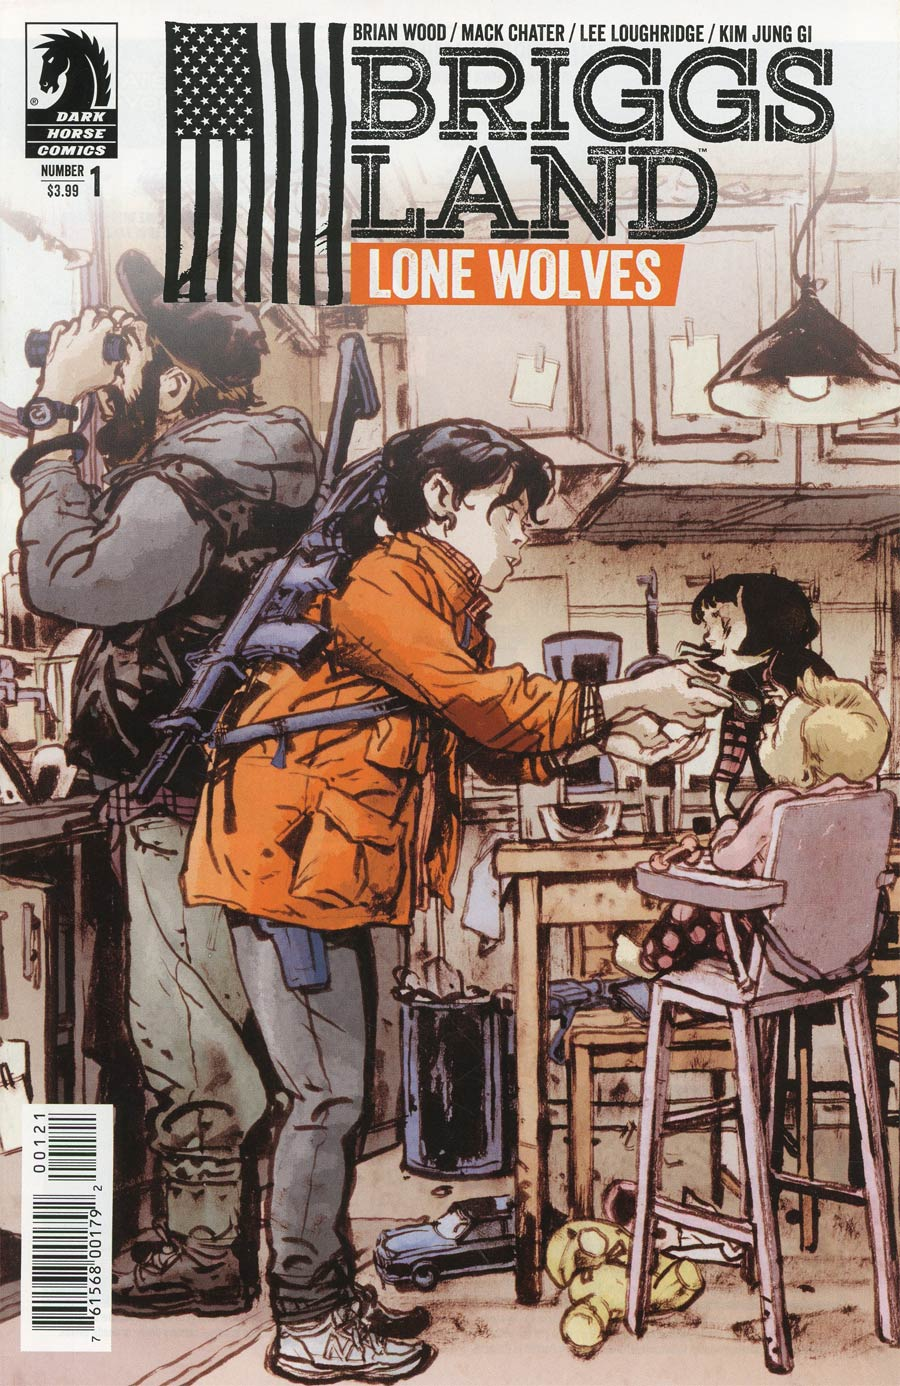 Briggs Land Lone Wolves #1 Cover B Variant Kim Jung Gi Cover